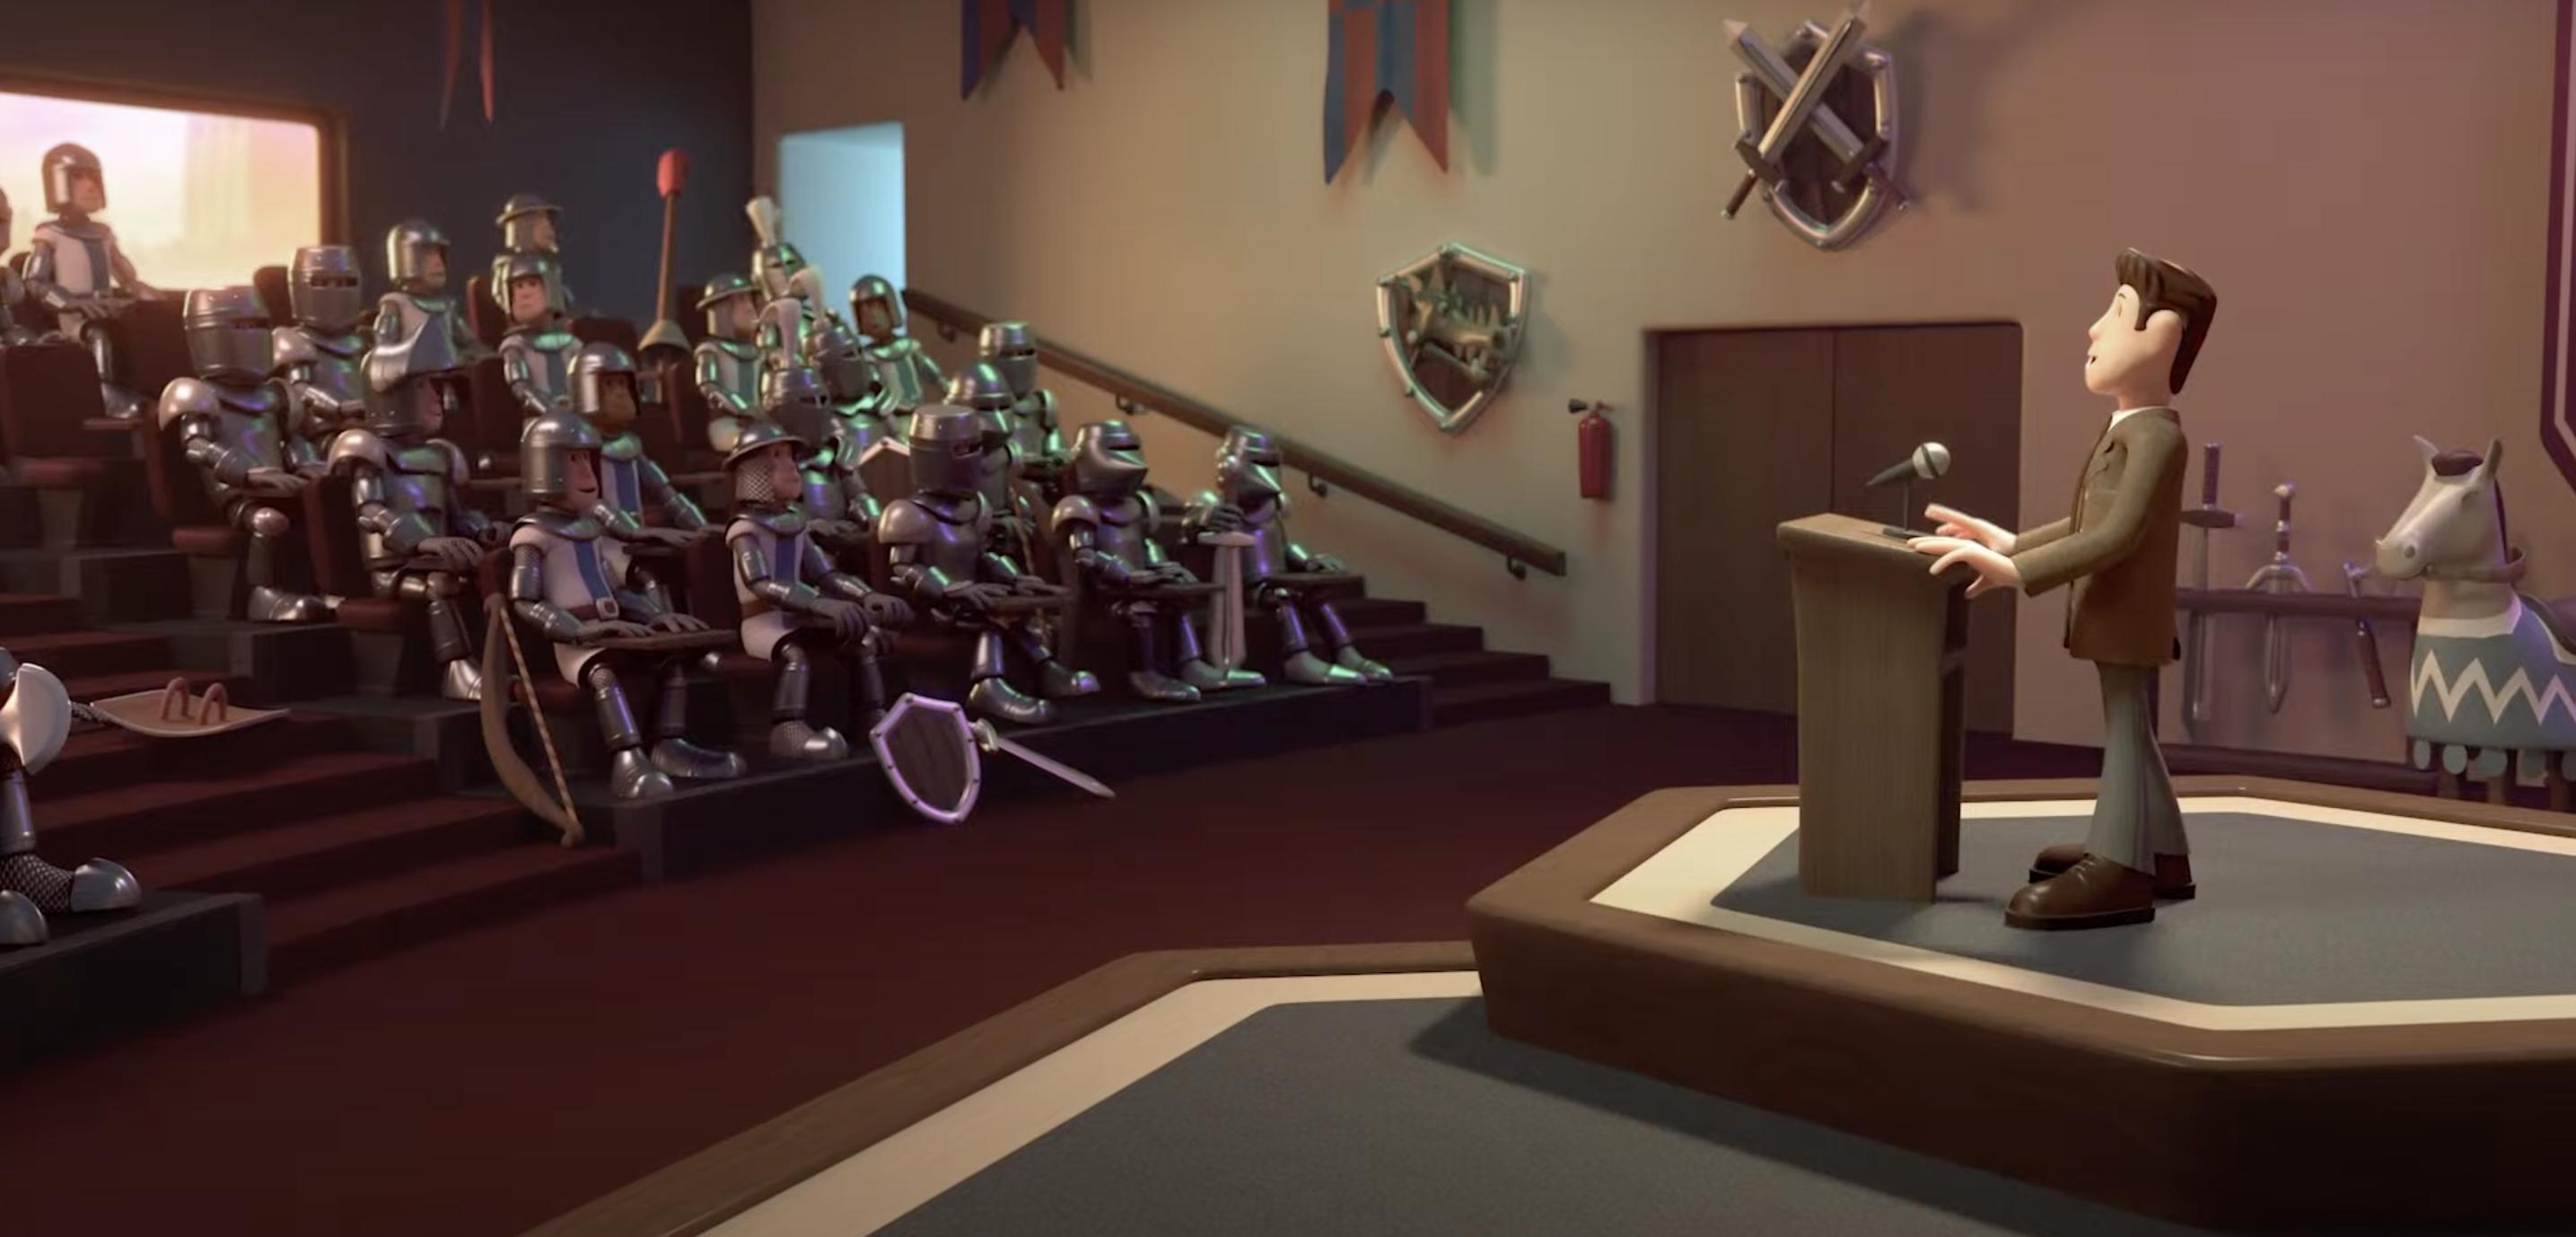 Lecture hall full of knights